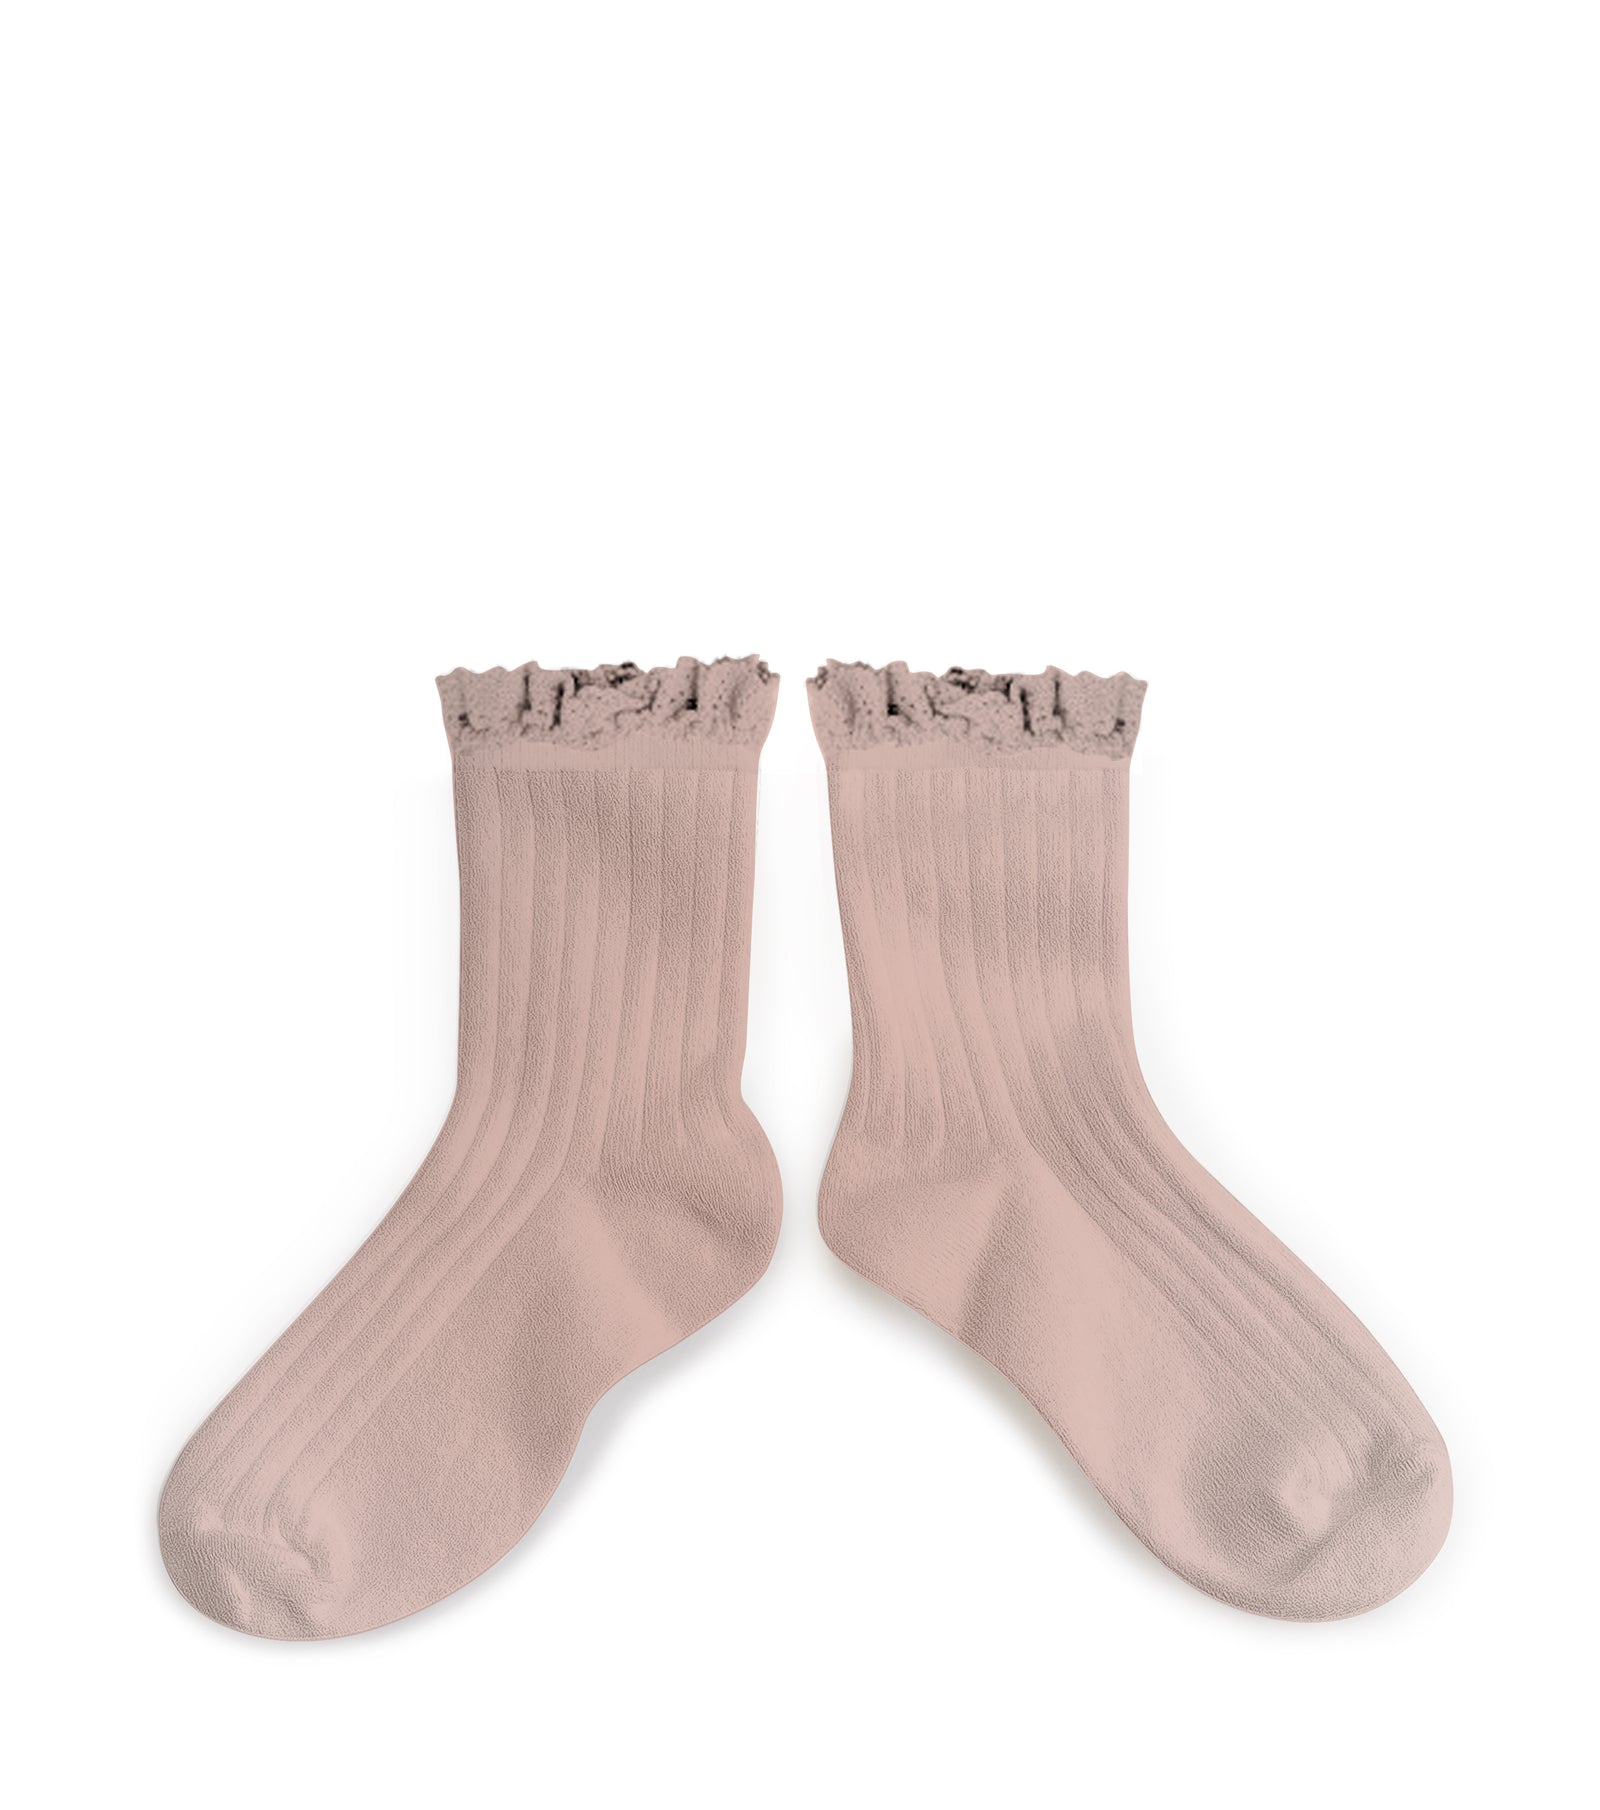 cacd377fc9f Collegien Ribbed Lace Trim Ankle Socks   Vieux Rose